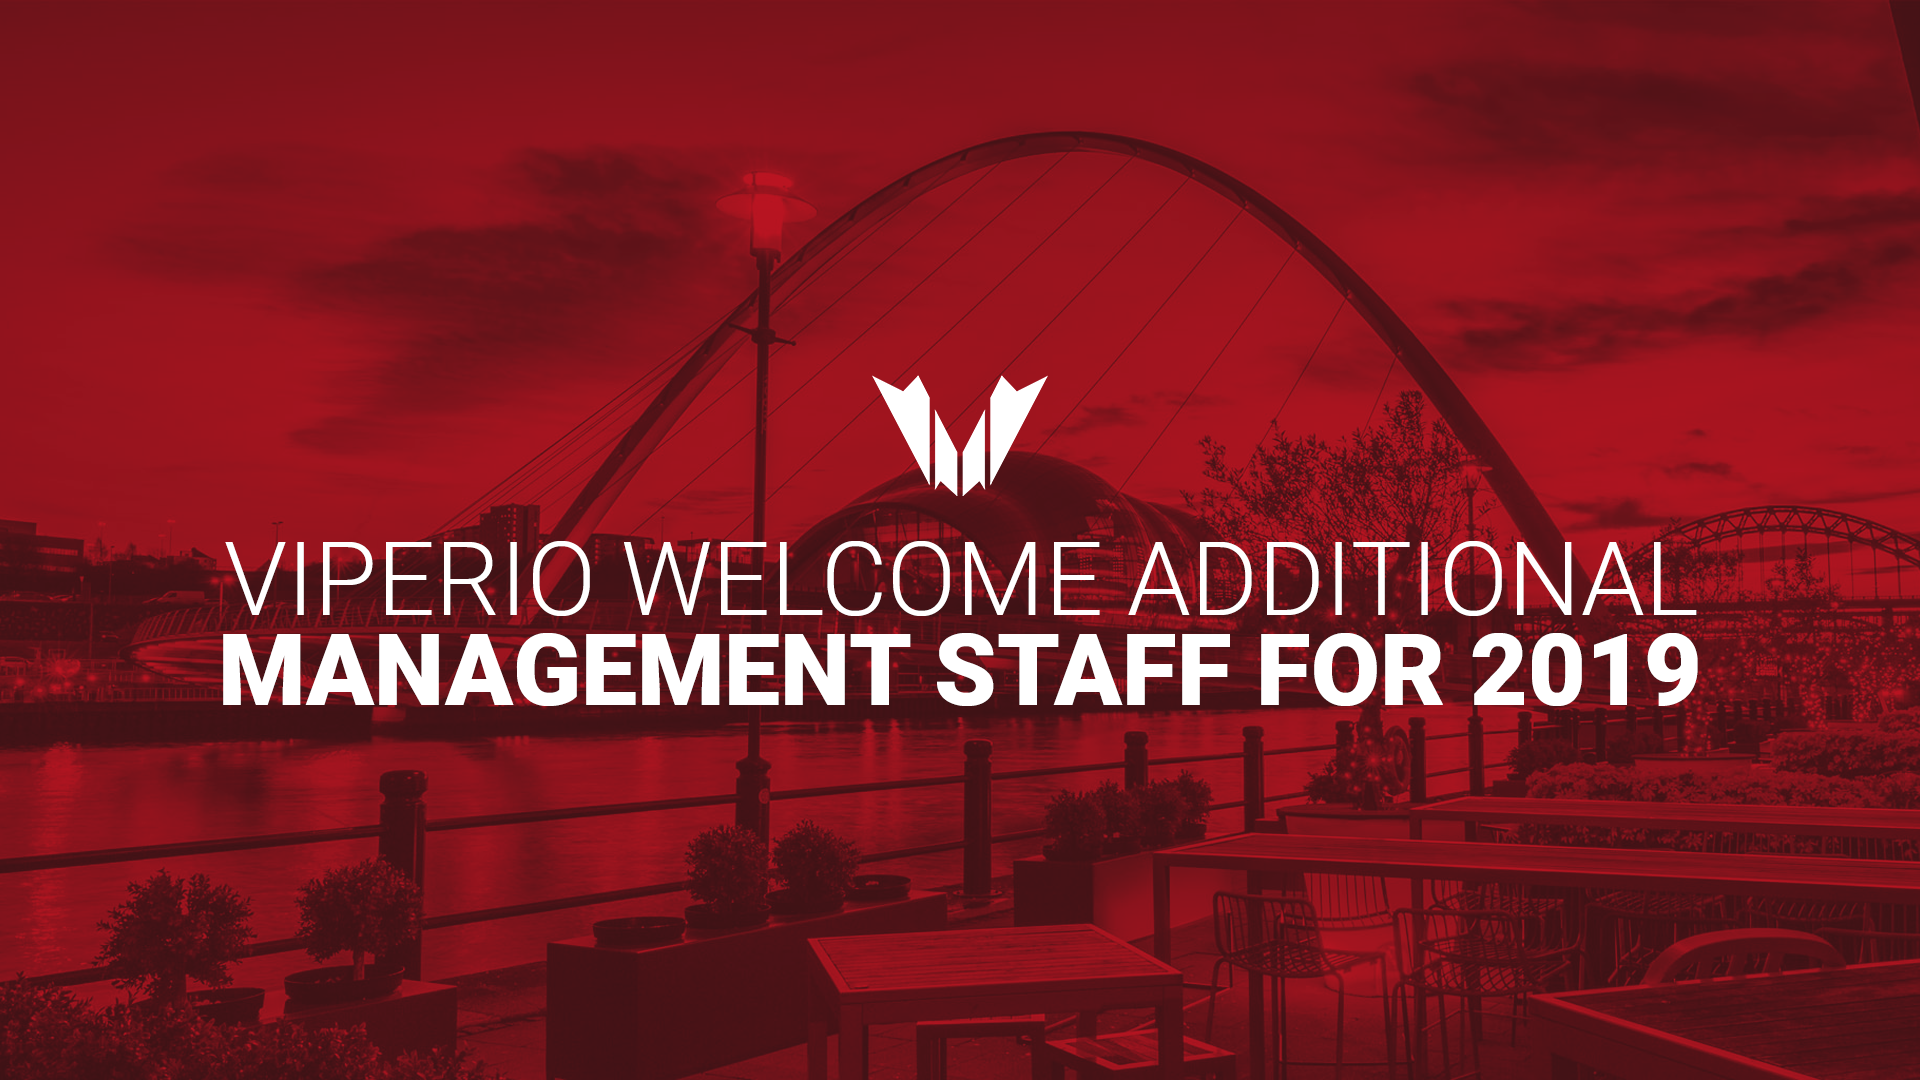 Viperio Welcome Additional Management For 2019